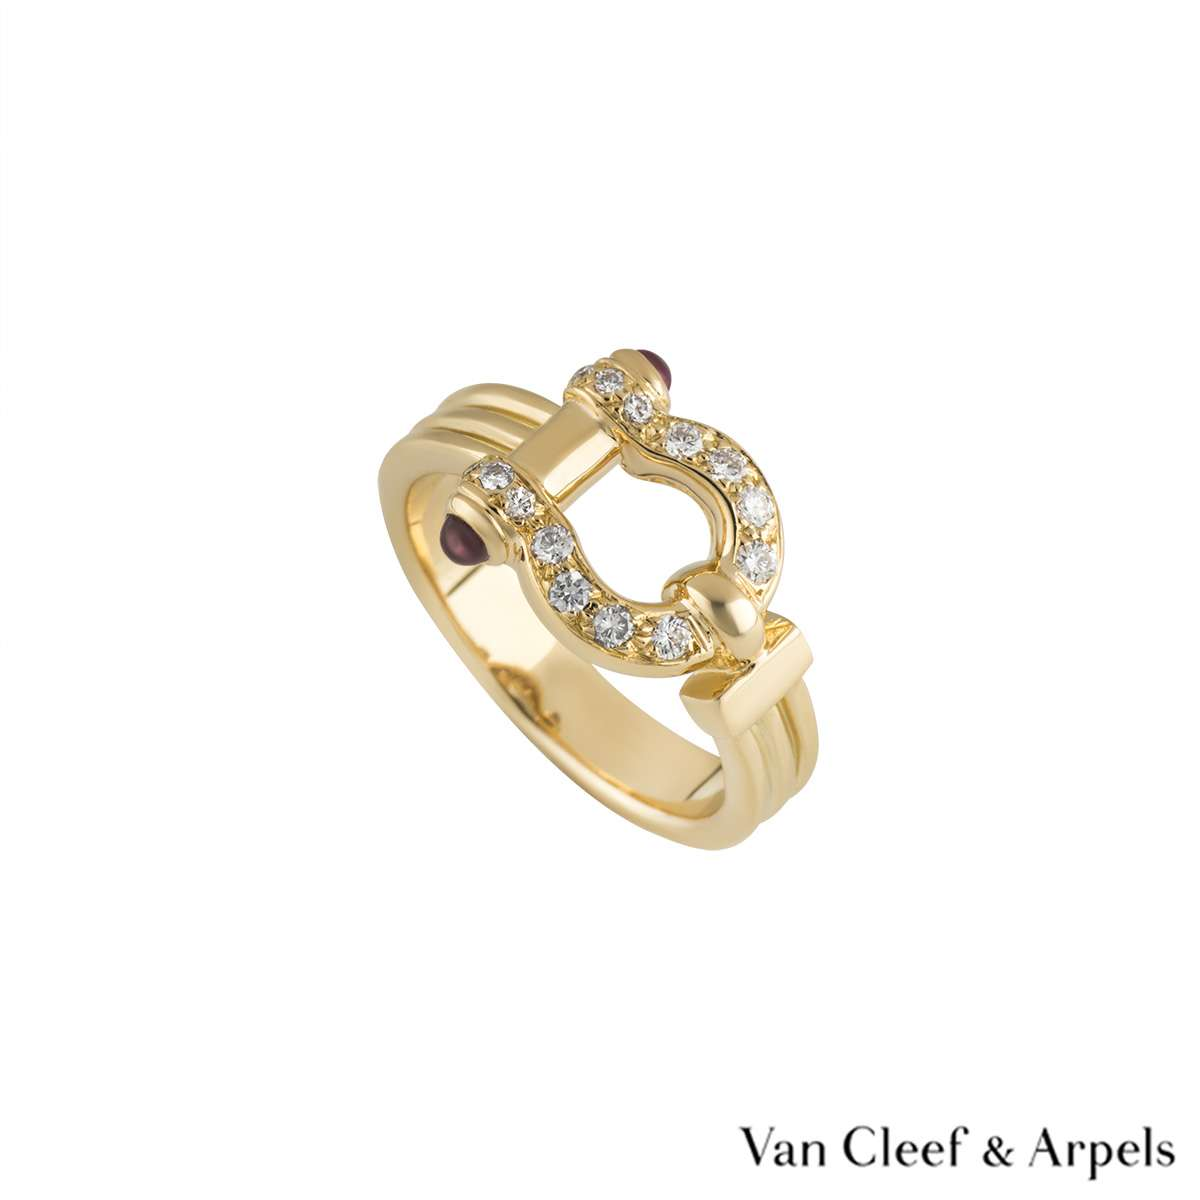 Van Cleef & Arpels Diamond & Ruby Horseshoe Ring